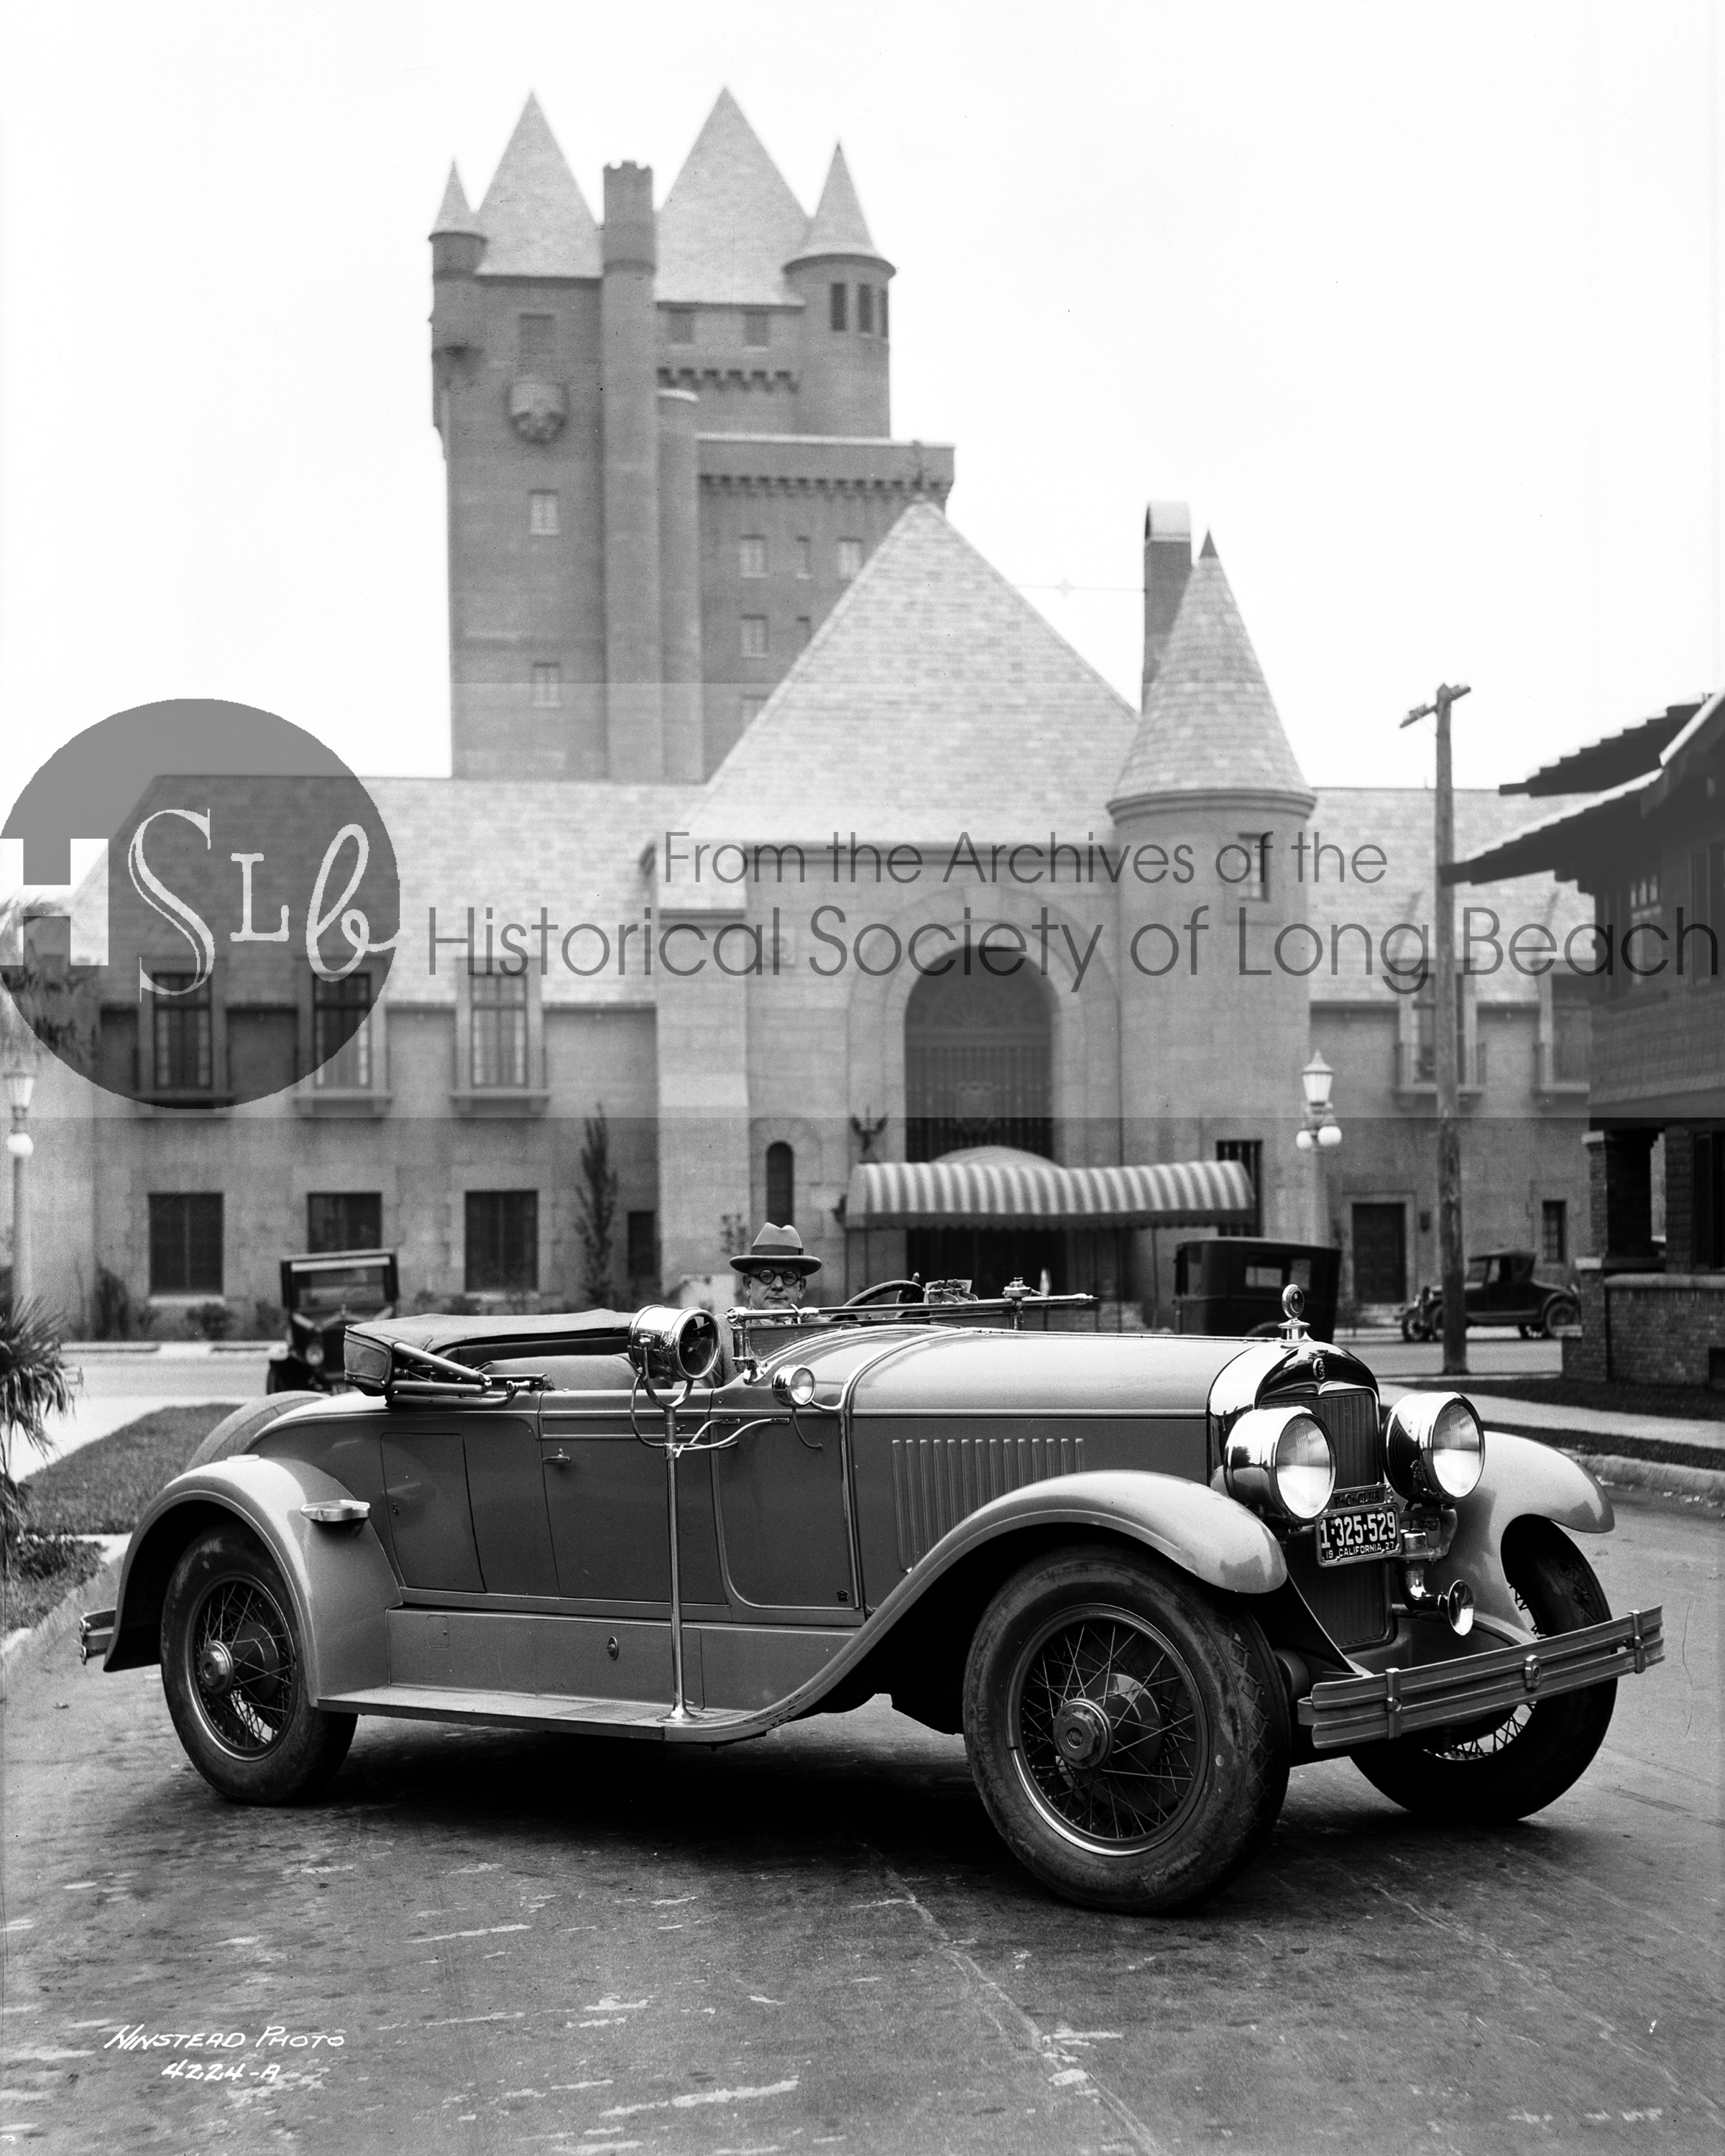 Historical long beach castle photograph and vintage car